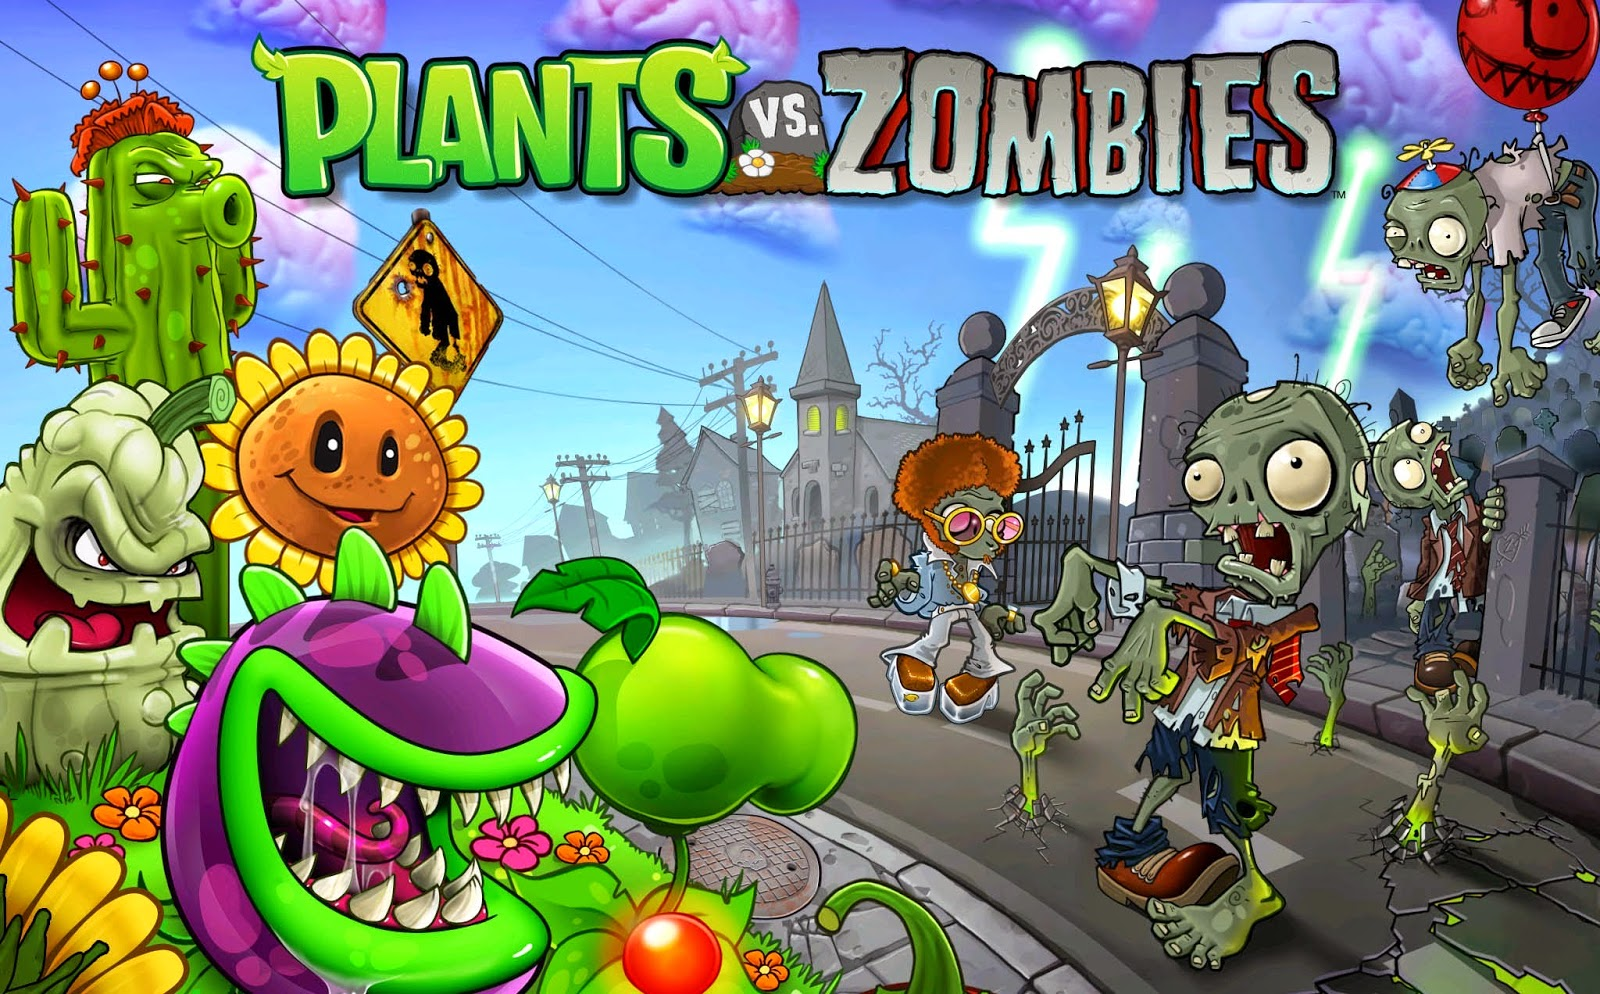 Plants vs Zombies 1.1.6 Apk Mod